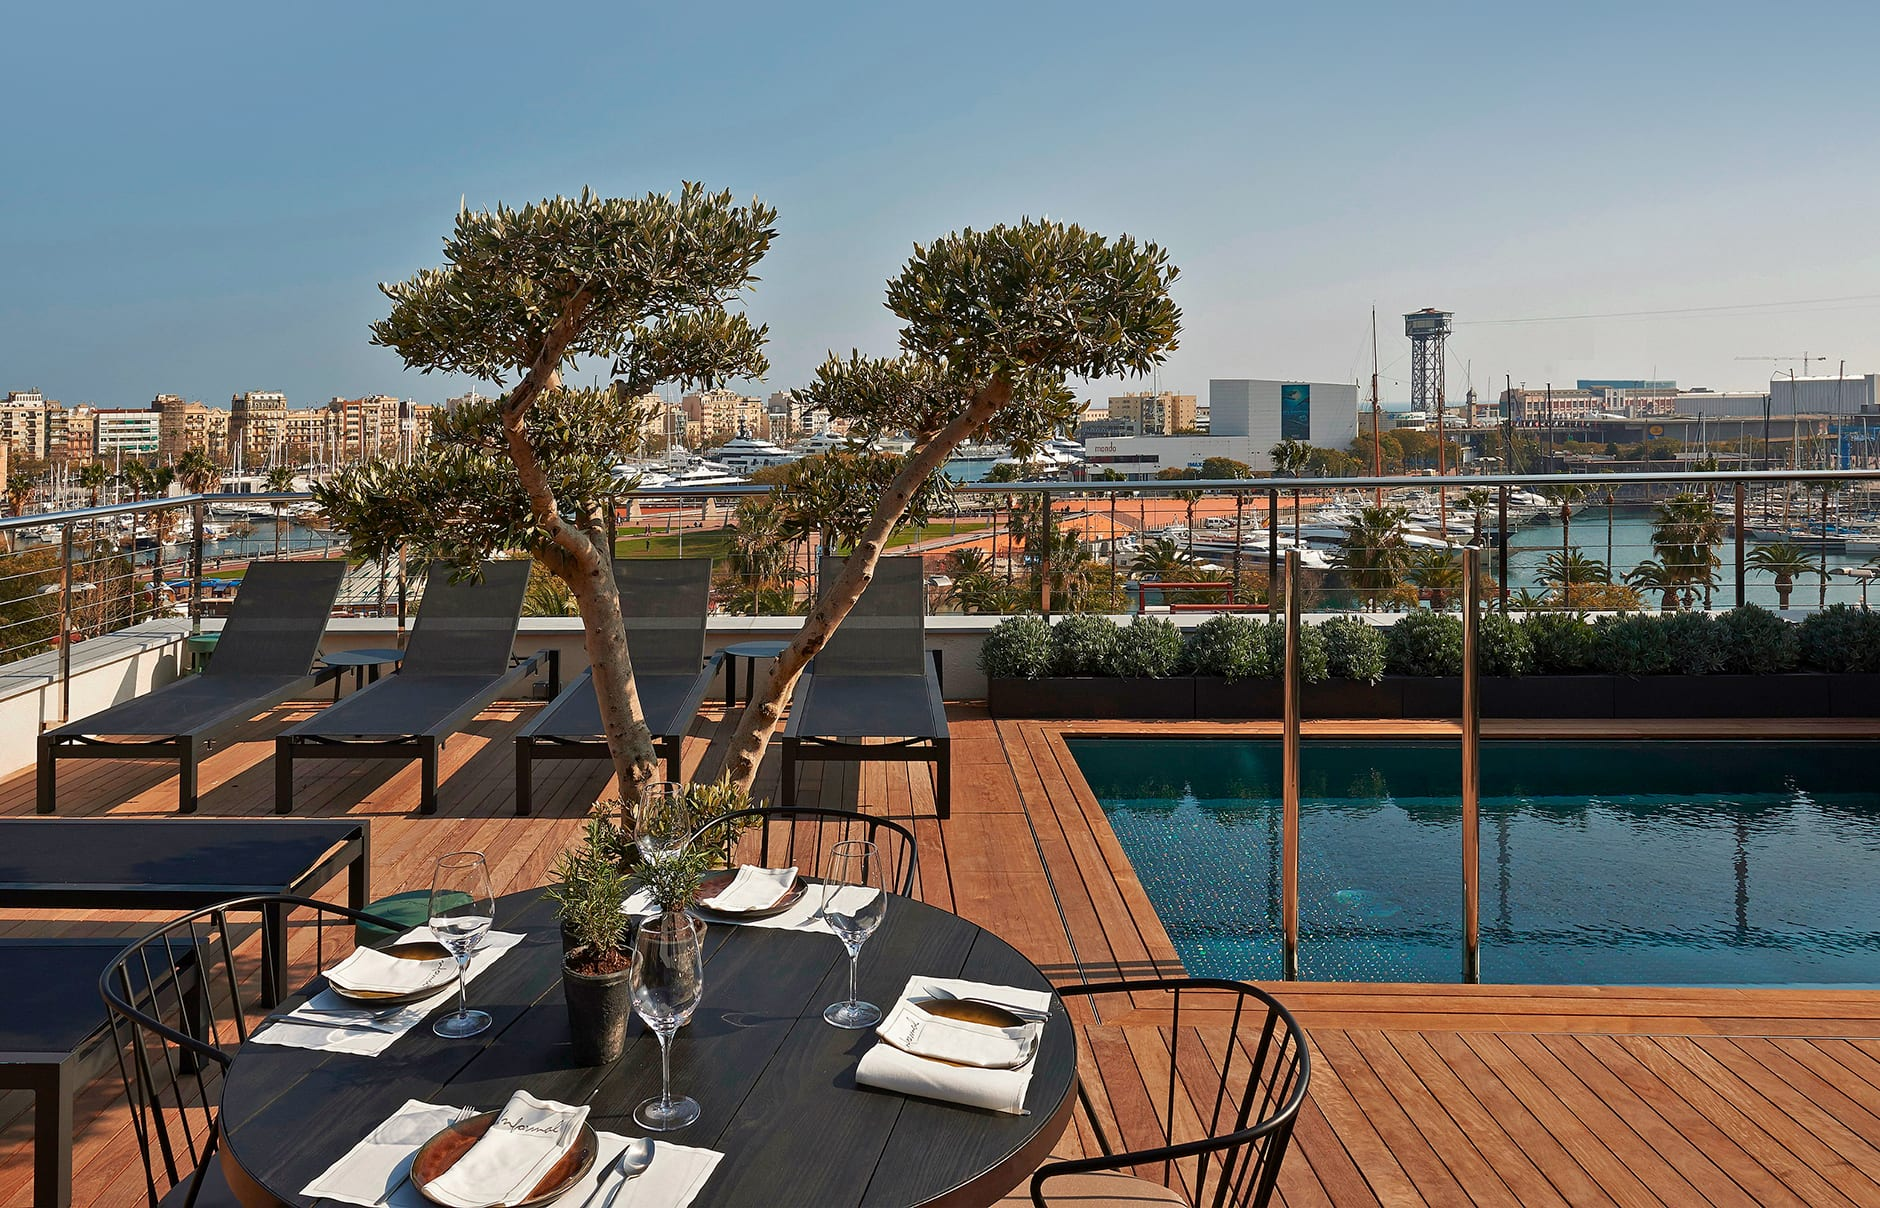 The Serras Hotel Barcelona, Spain. Hotel Review by TravelPlusStyle. Photo © The Serras